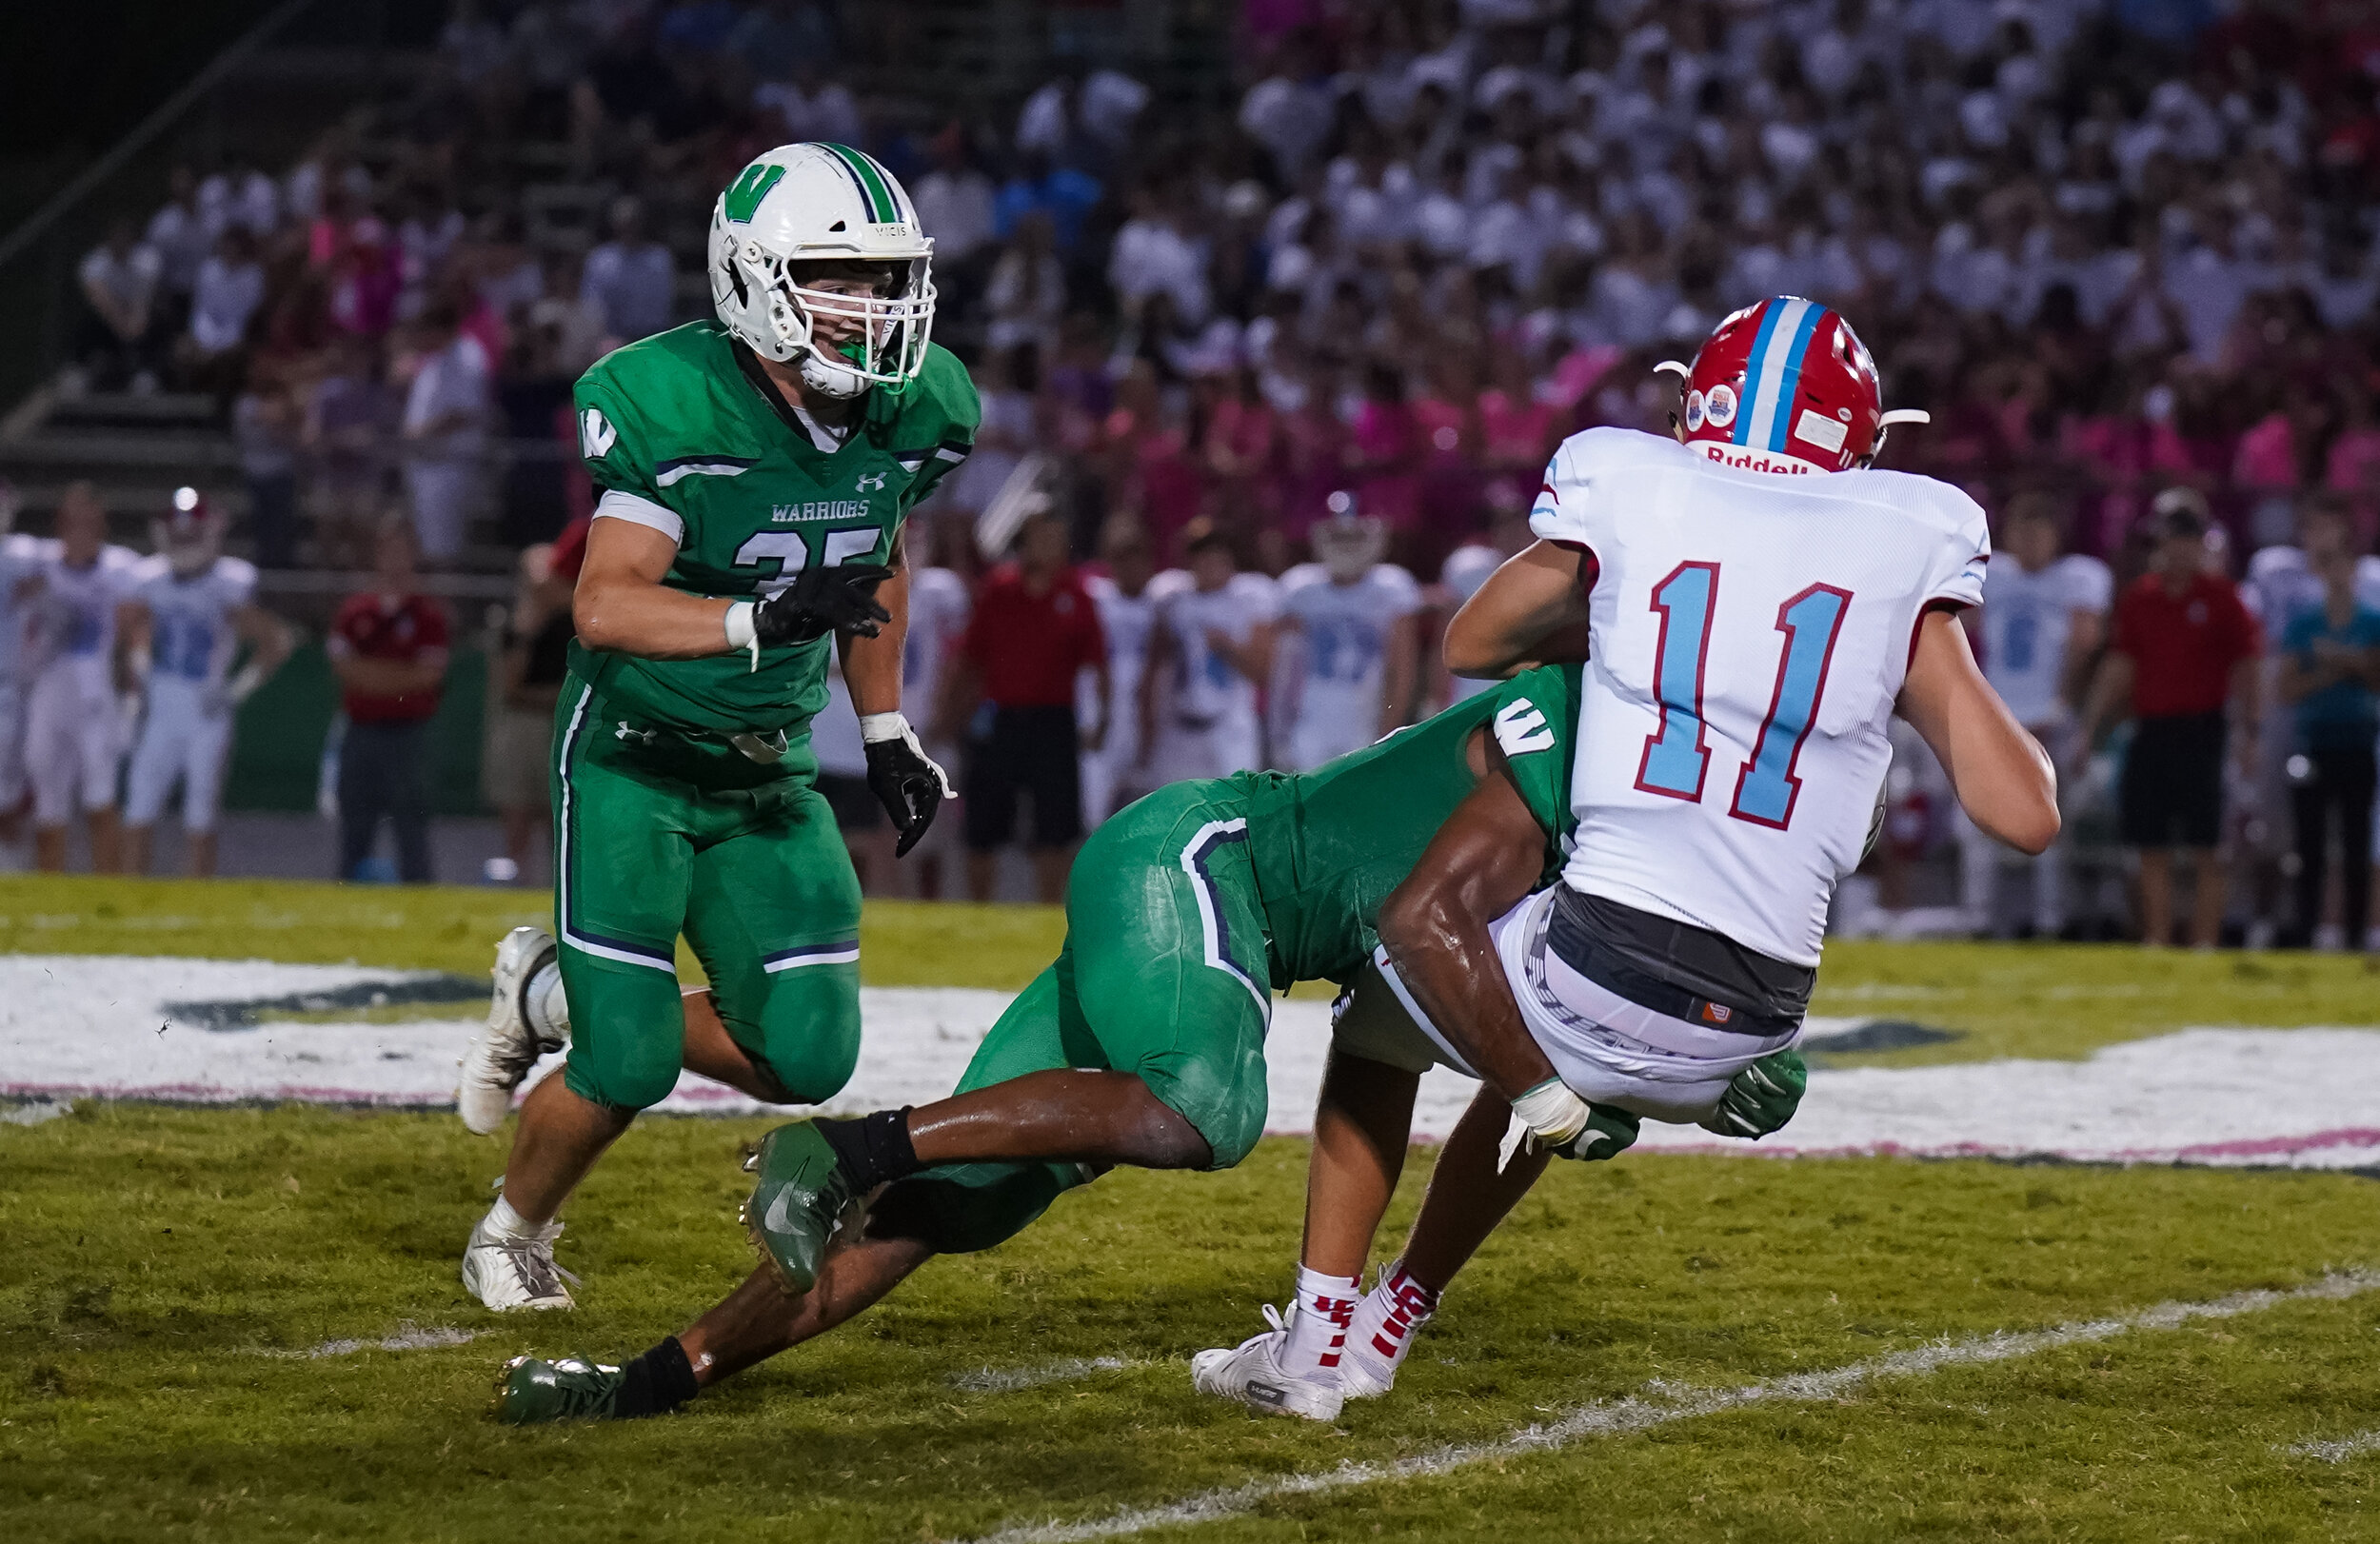 Weddington's DE/OLB #33 Trey Alsbrooks delivers a big blow sacking the Catholic QB #11 Jake Smith